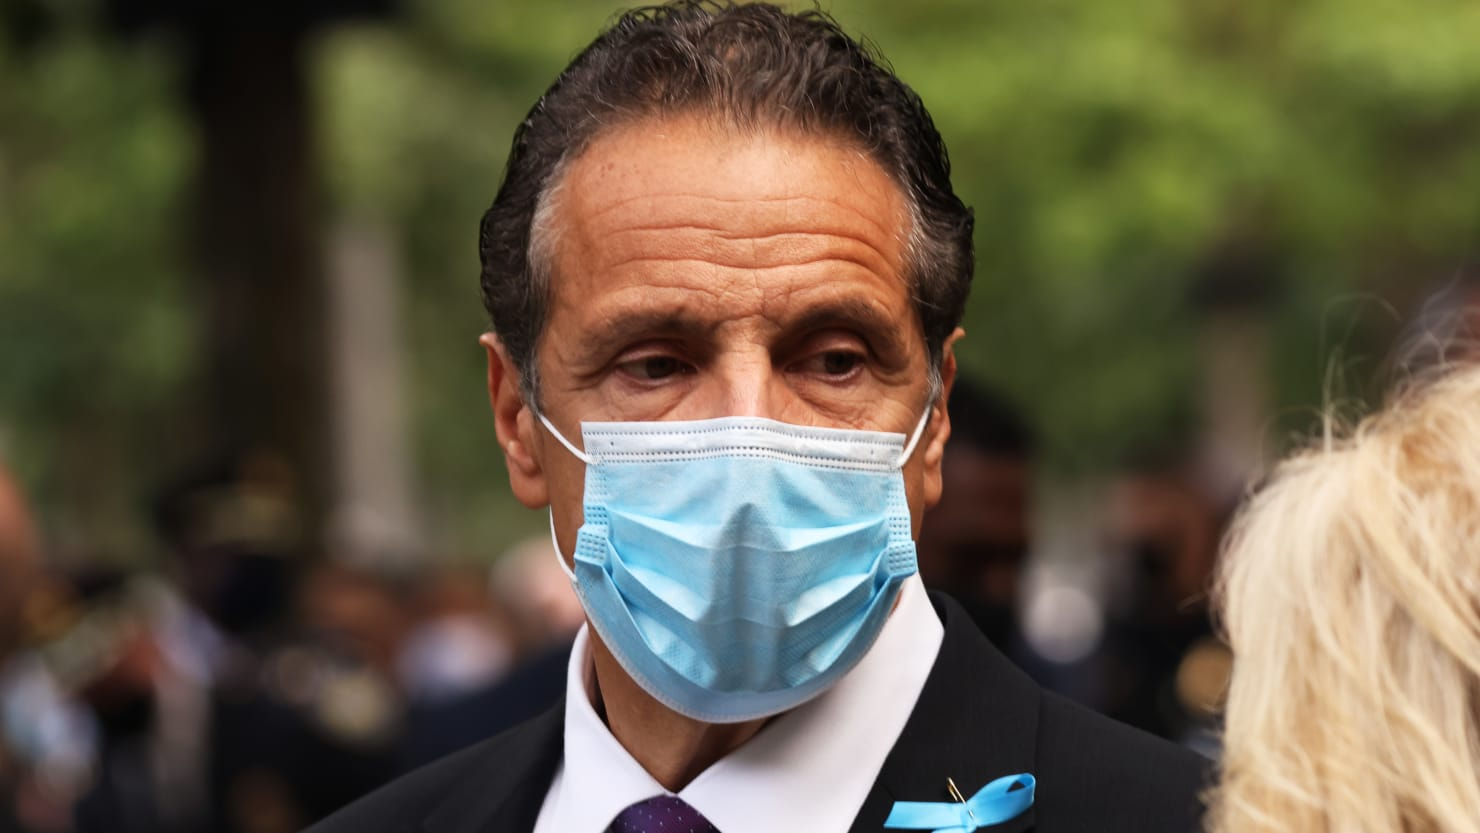 Dem Lawmakers Threaten to Revoke Cuomo's Pandemic Powers After Nursing Home Fiasco